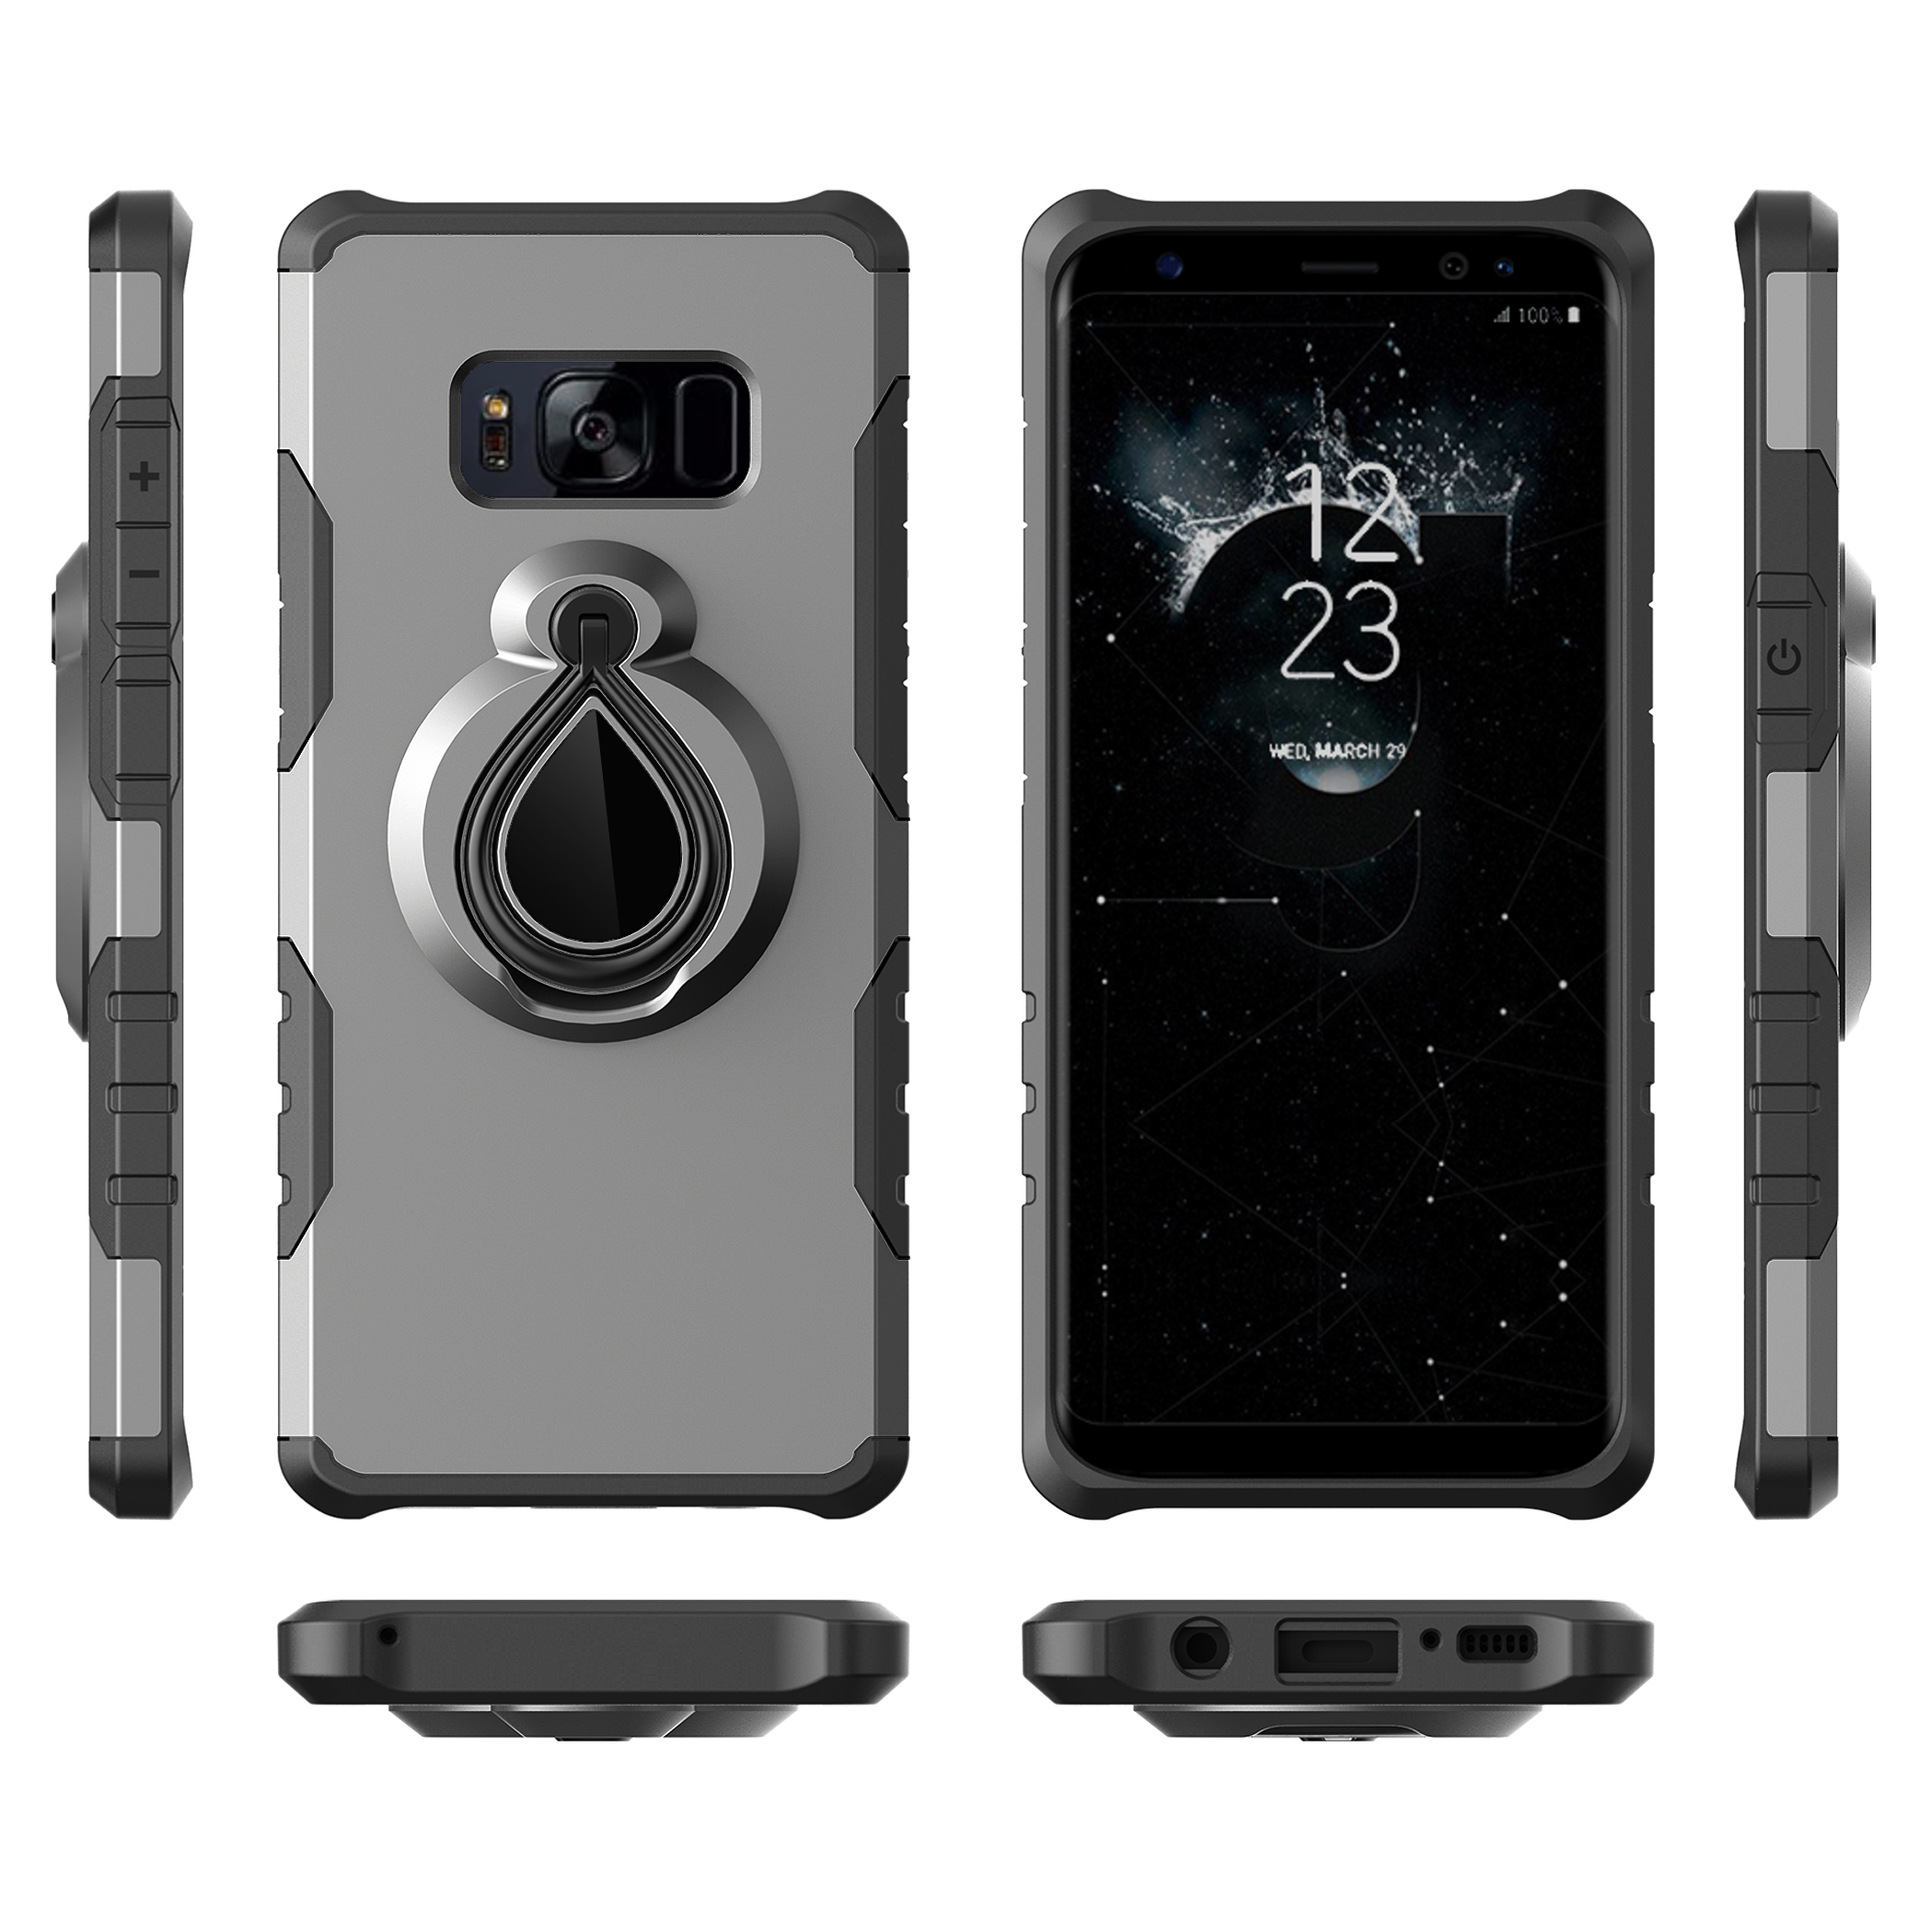 2 in 1 armor ring holder tpu pc rugged knight phone case for Samsung galaxy S8 plus  shockproof cover